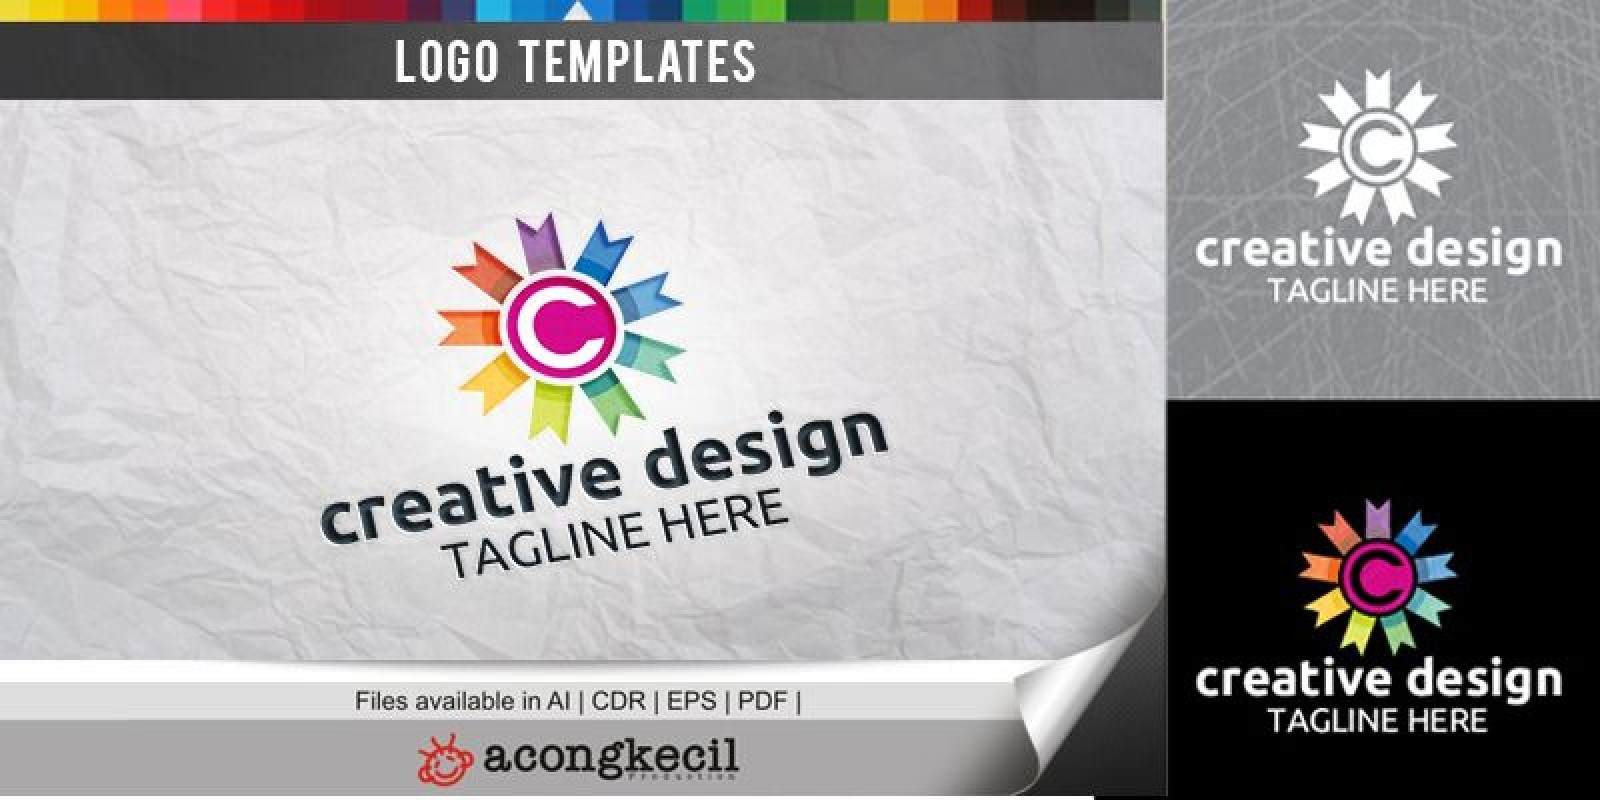 Creative Design - Logo Template